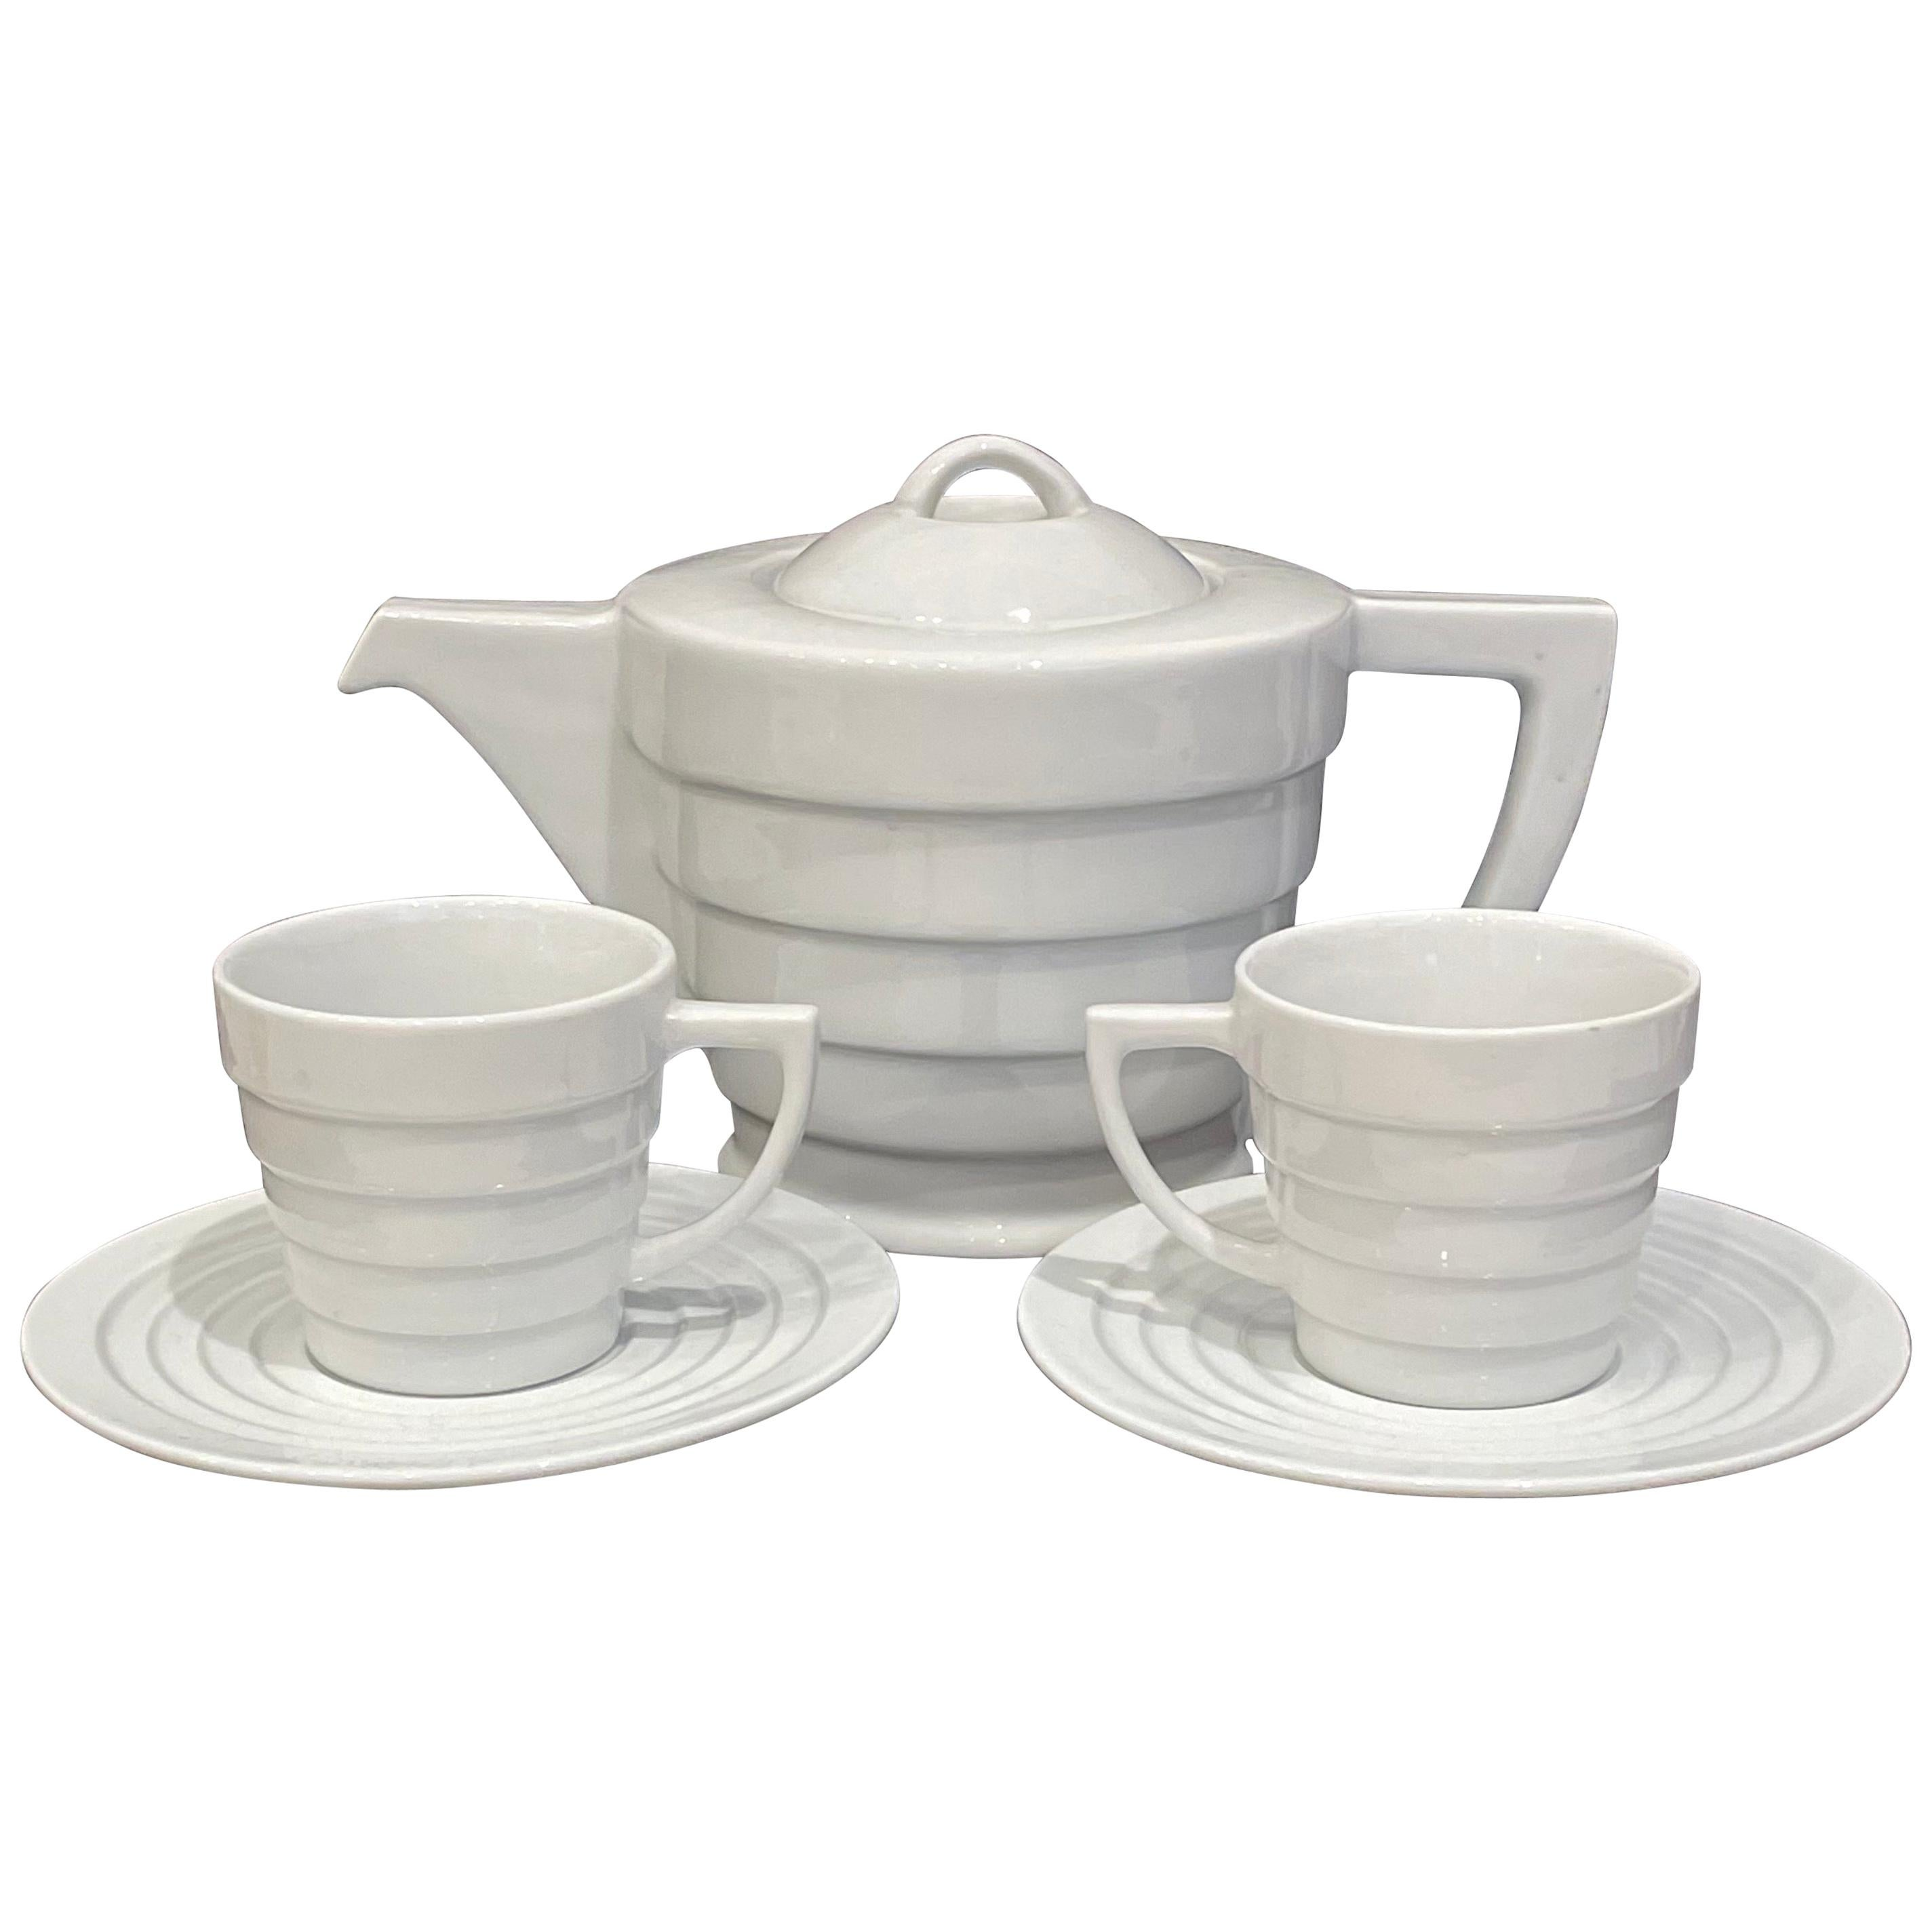 Henriksen Guggenheim Frank Lloyd Wright Collection Teapot and Cups, Set for 2